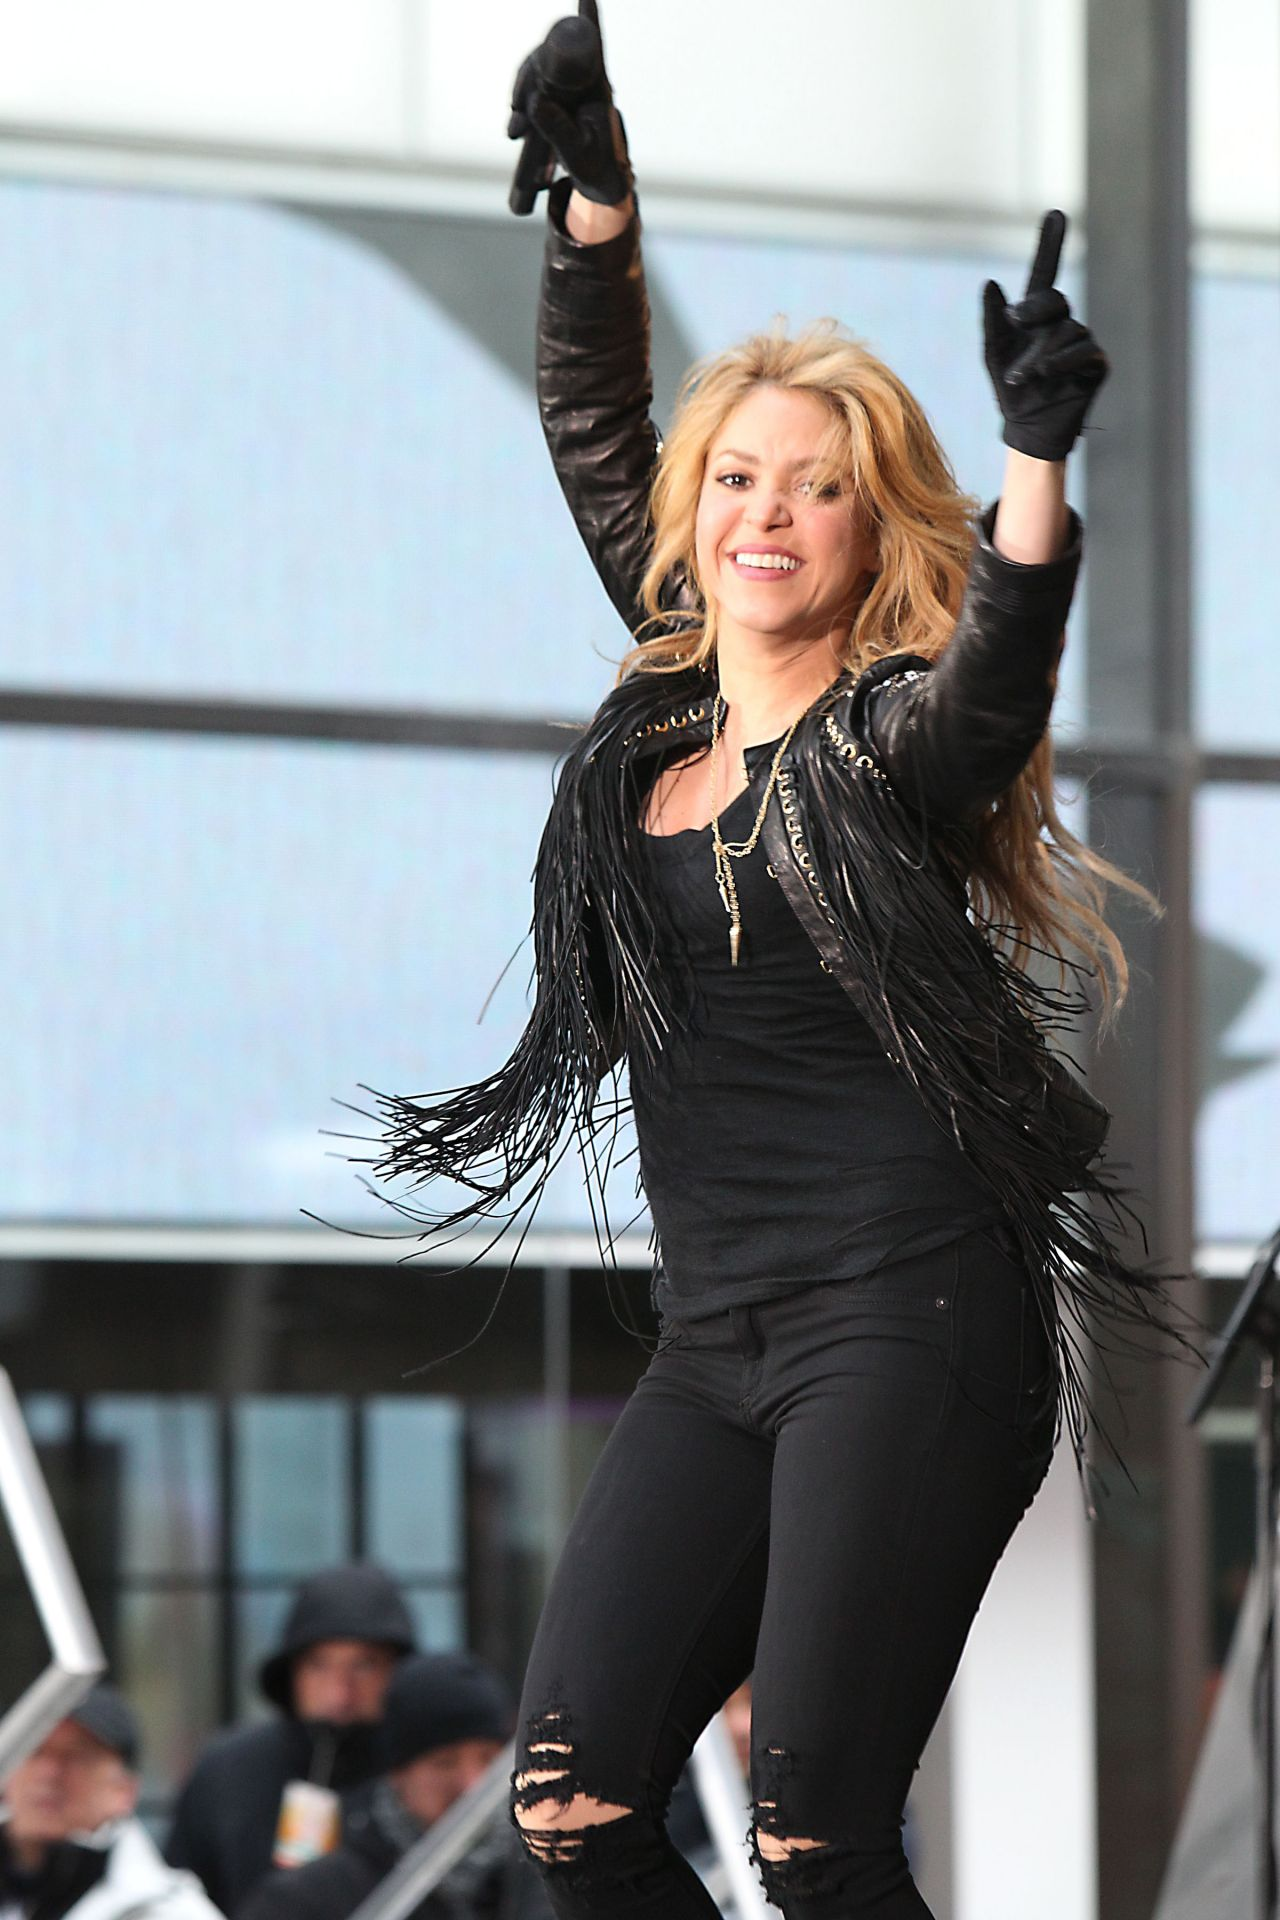 Nfl On Sirius >> Shakira - Performing on NBC's 'Today' - Rockefeller Plaza in New York City